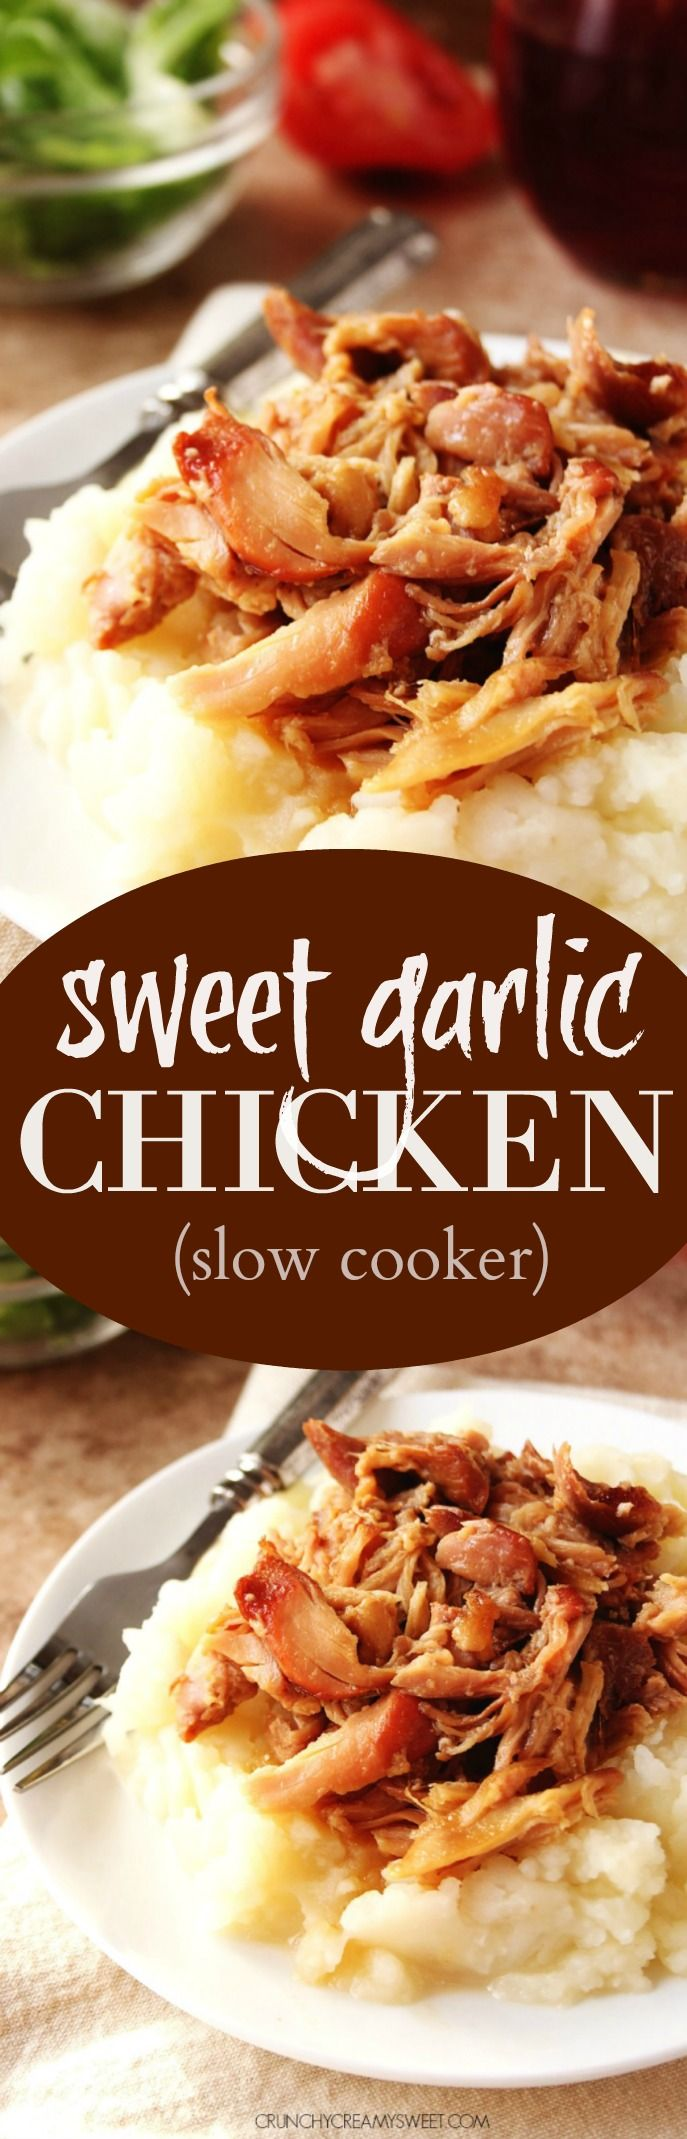 Slow Cooker Sweet Garlic Chicken – a five ingredient chicken dish that cooks in a slow cooker! Perfect for a comfort food dinner on a Sunday or over rice on a weekday.